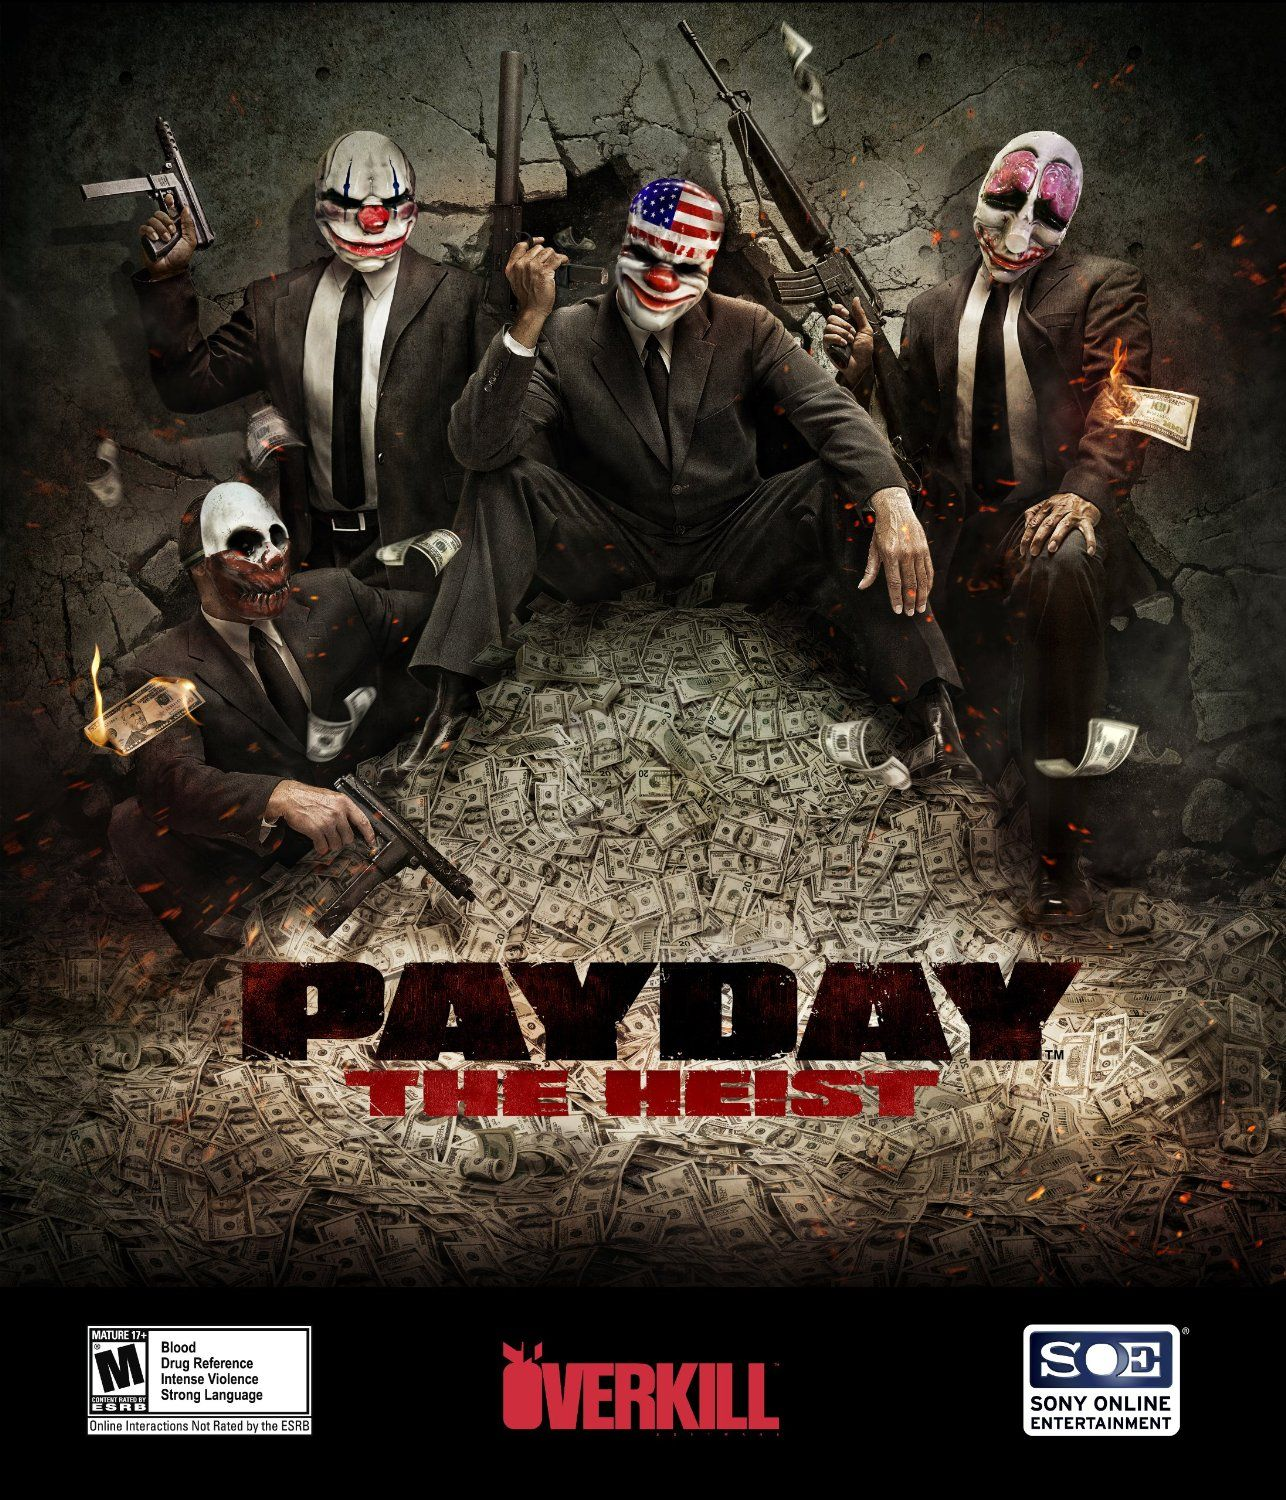 Payday: The Heist (PC Digital Download) Free | Movies, Music, Games